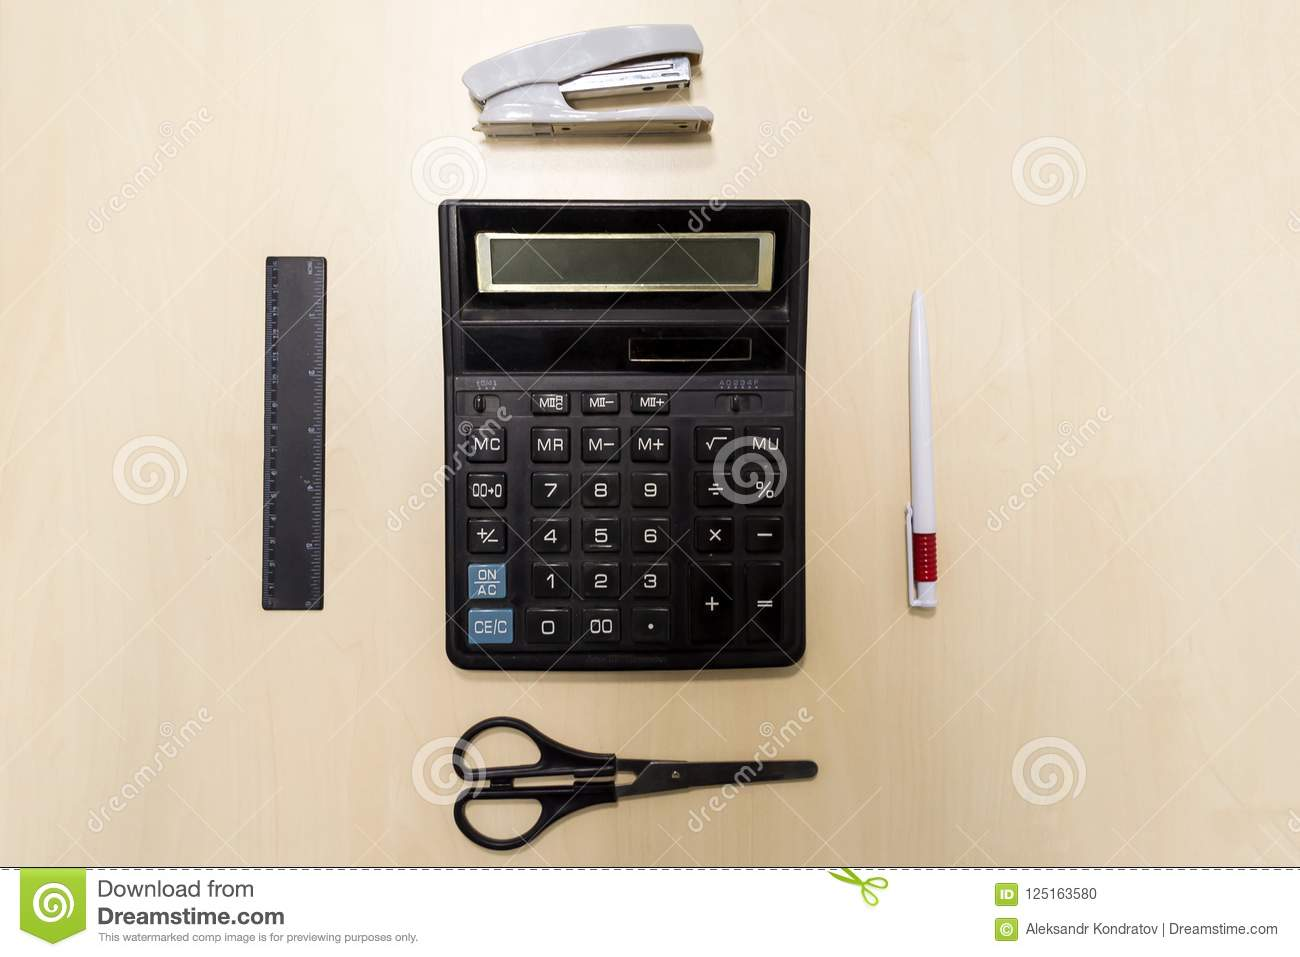 A set of office tools consisting of a calculator, pen, stapler,